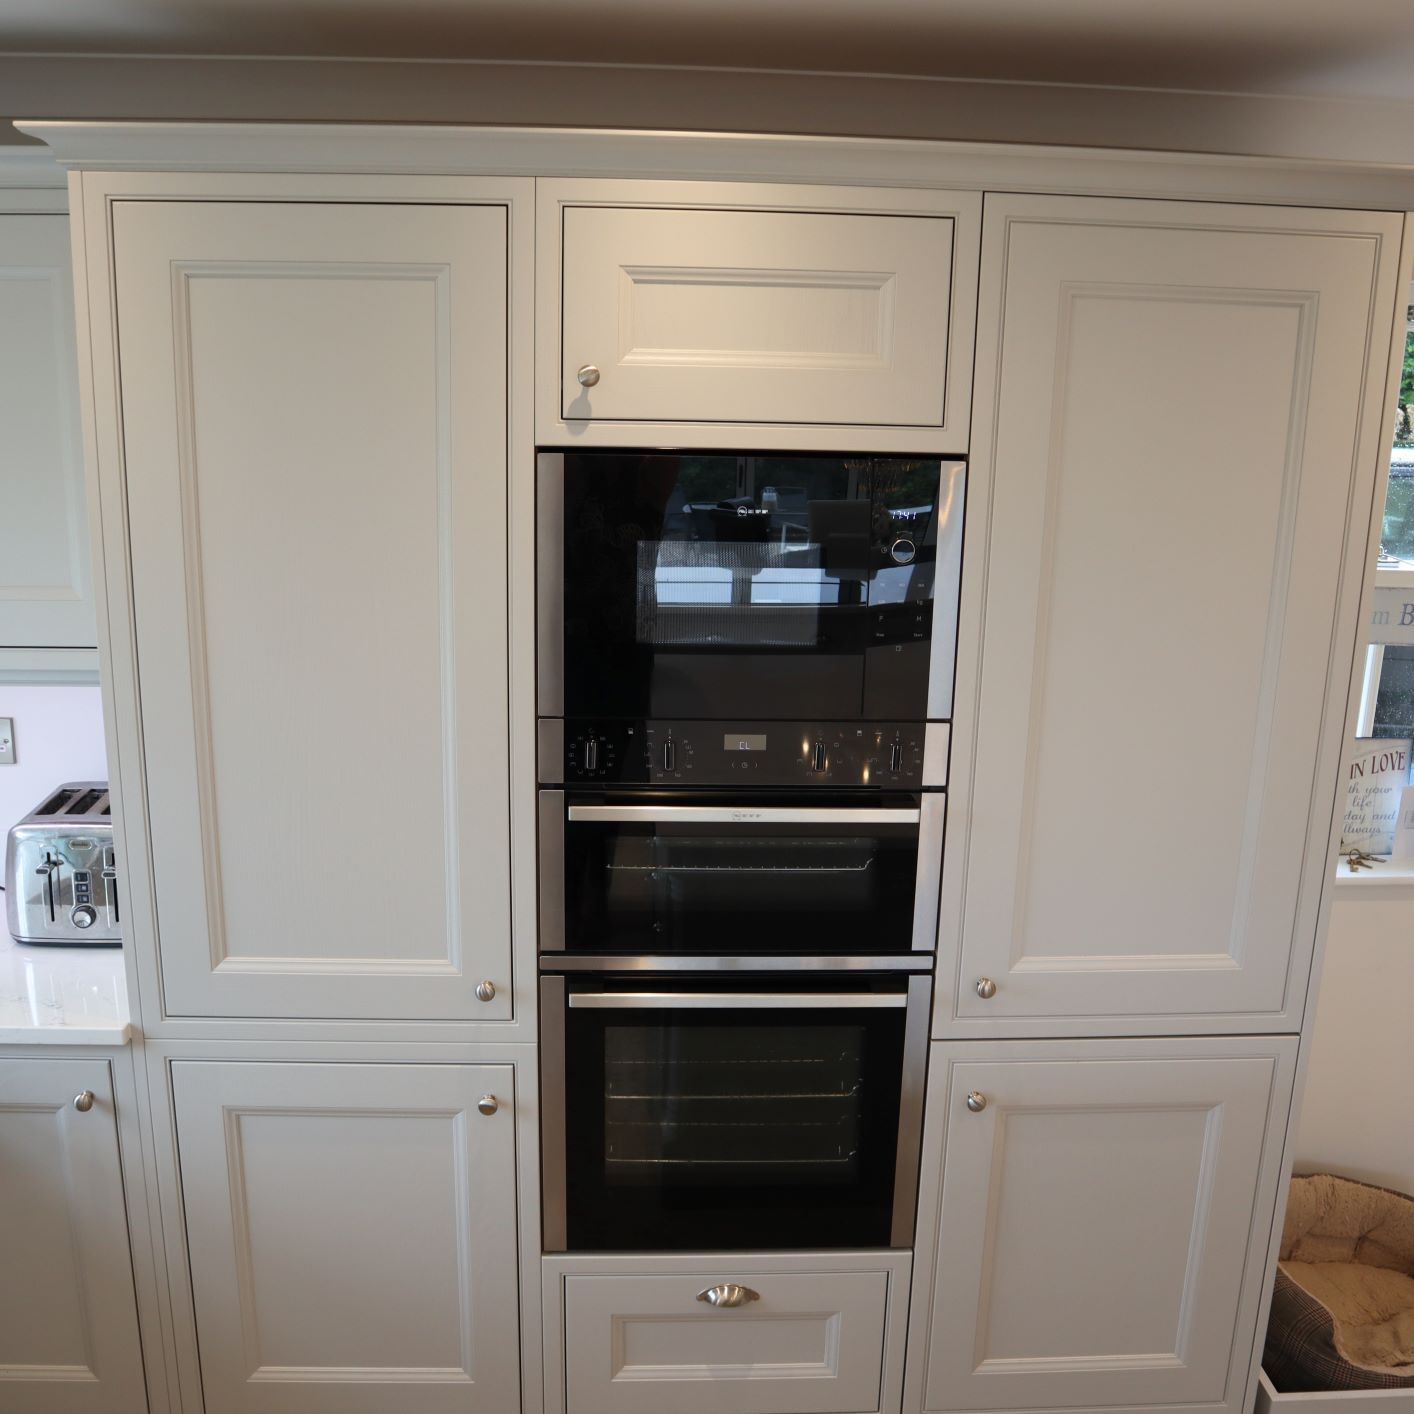 Thwaite in Light Grey Tall Larders & Built In Oven & Microwave